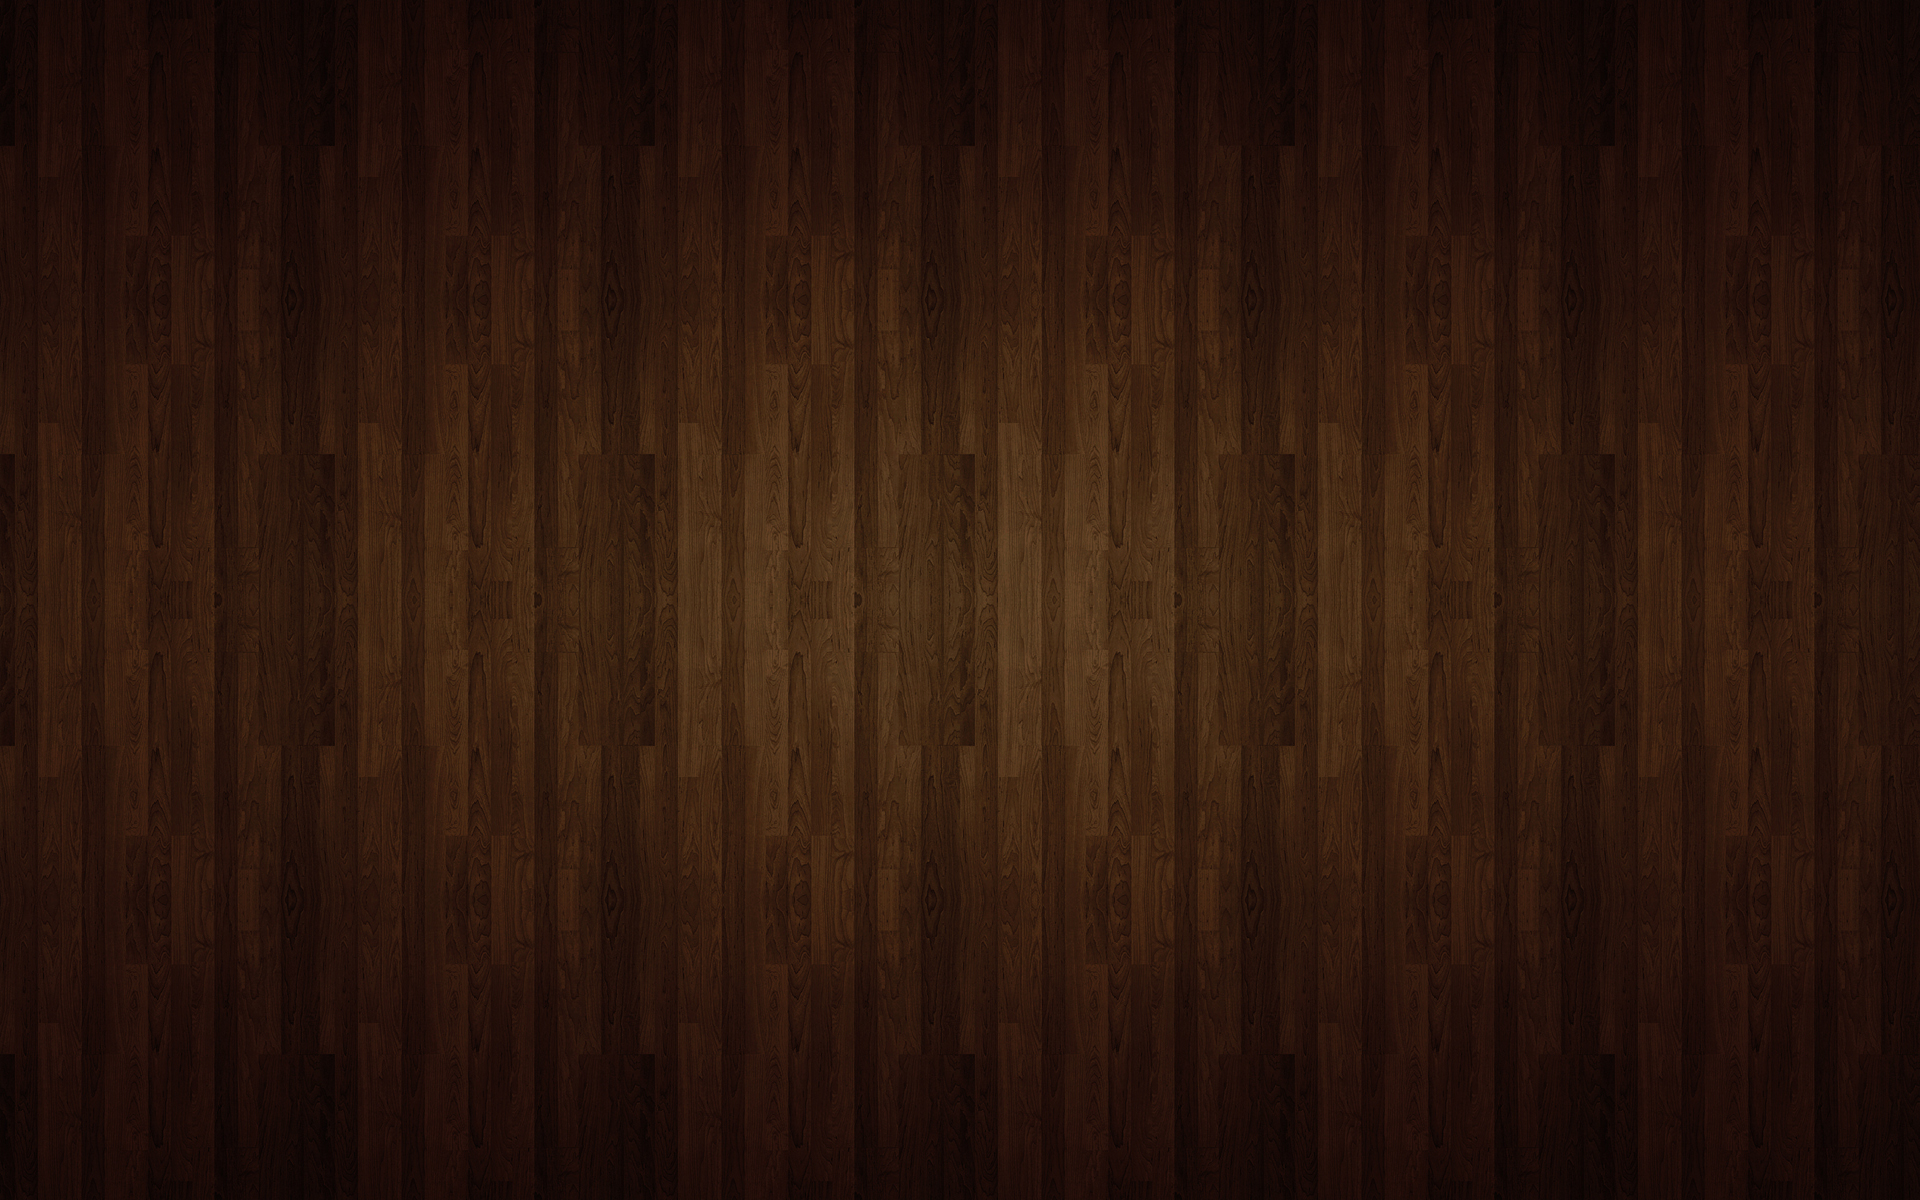 Wood Texture Abstract 1920x1200 1920x1200